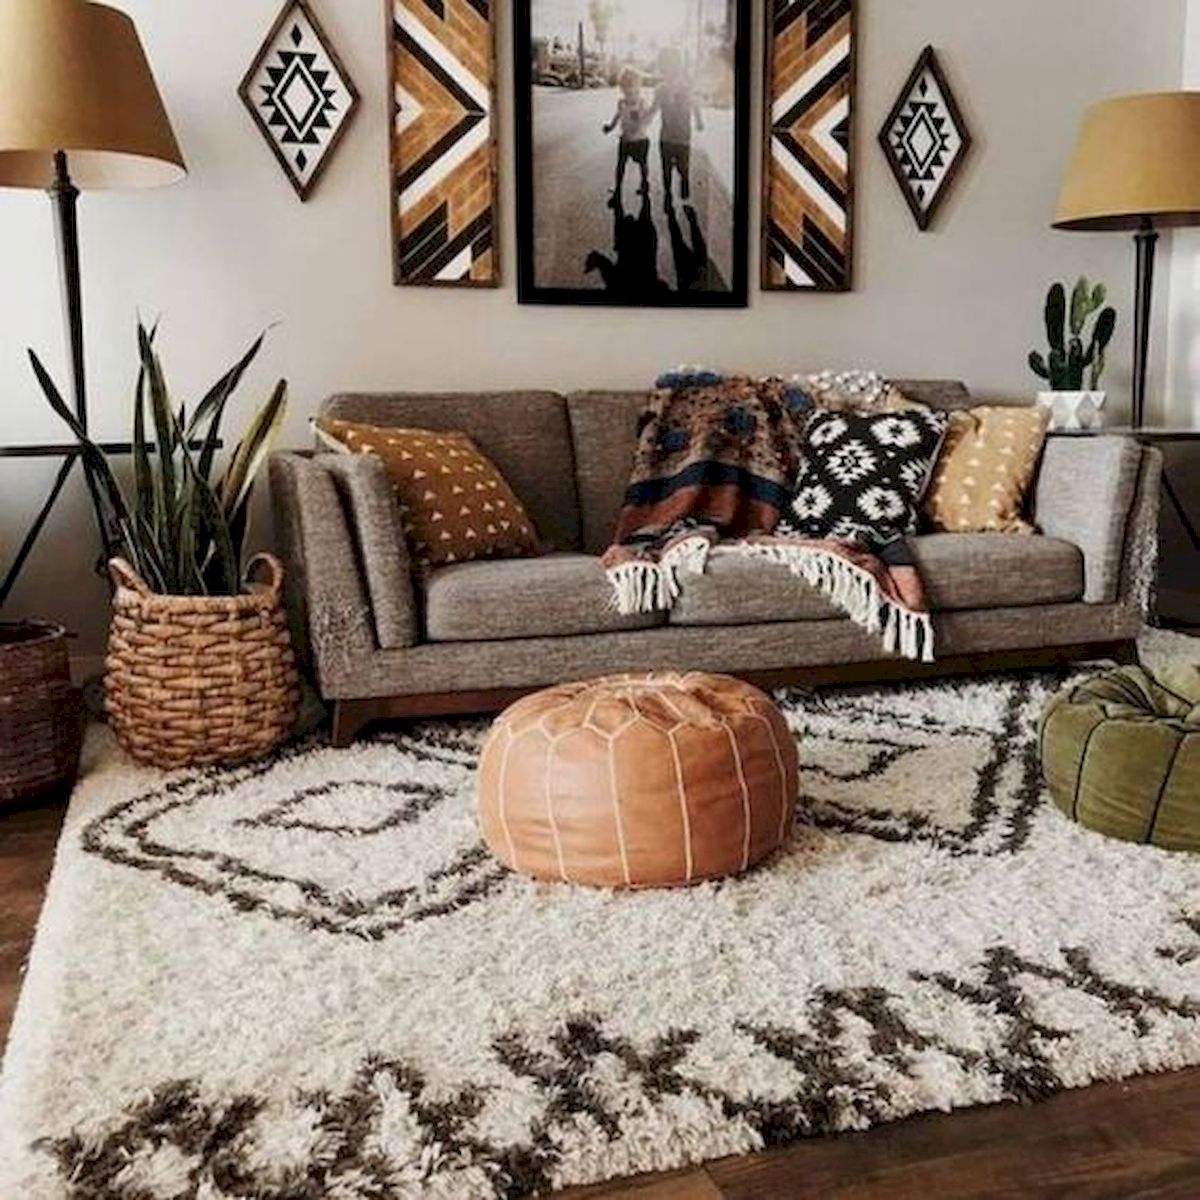 Living Room Decor Inspiration: 55 Bohemian Living Room Decor Ideas